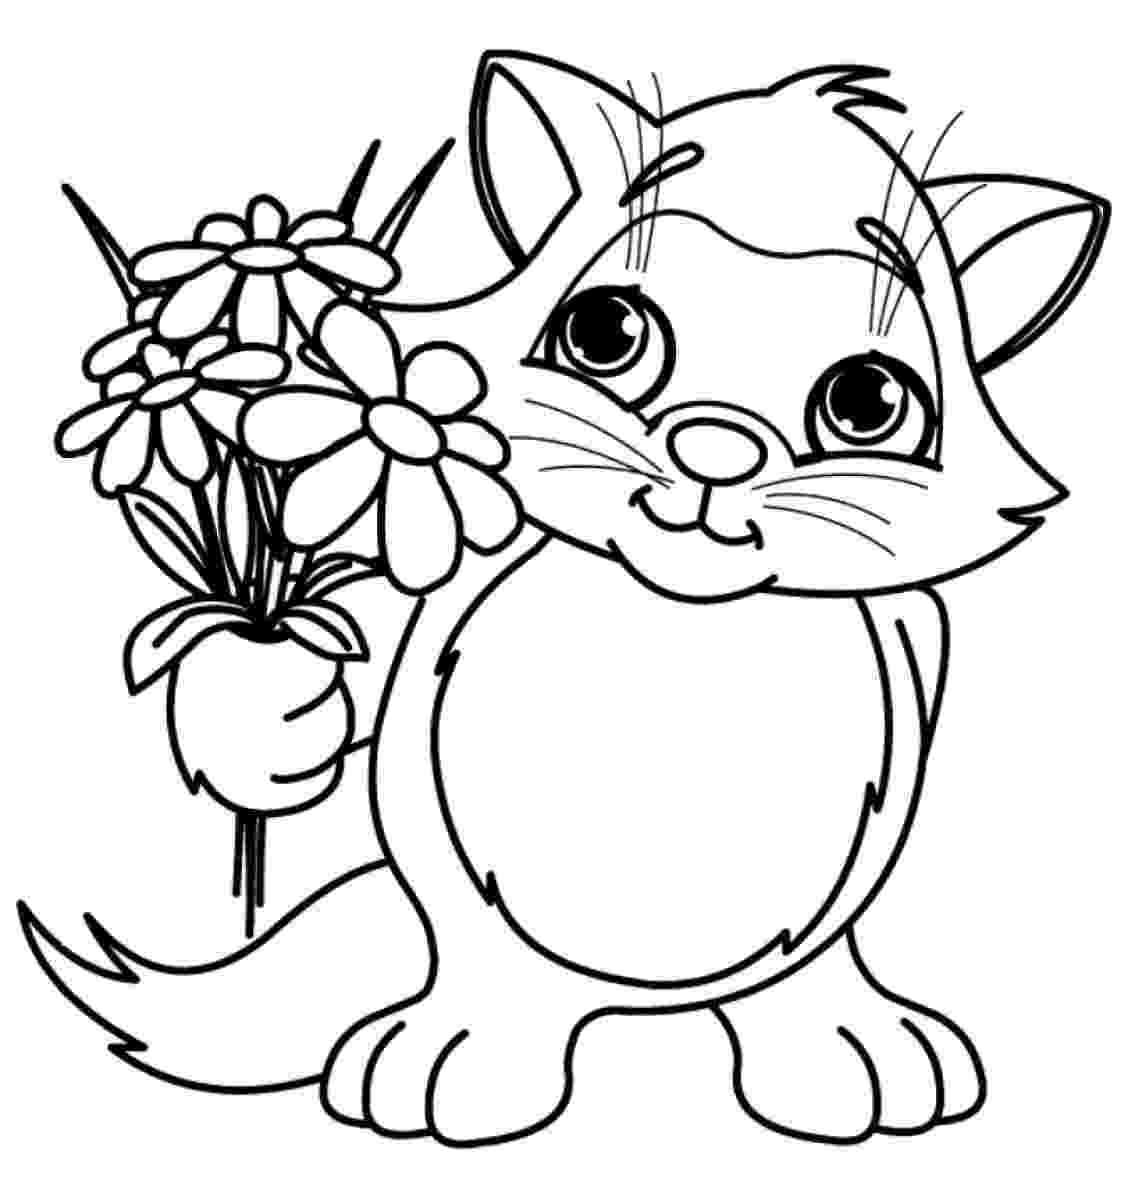 colouring pictures of plants free printable may coloring pages plants pictures colouring of